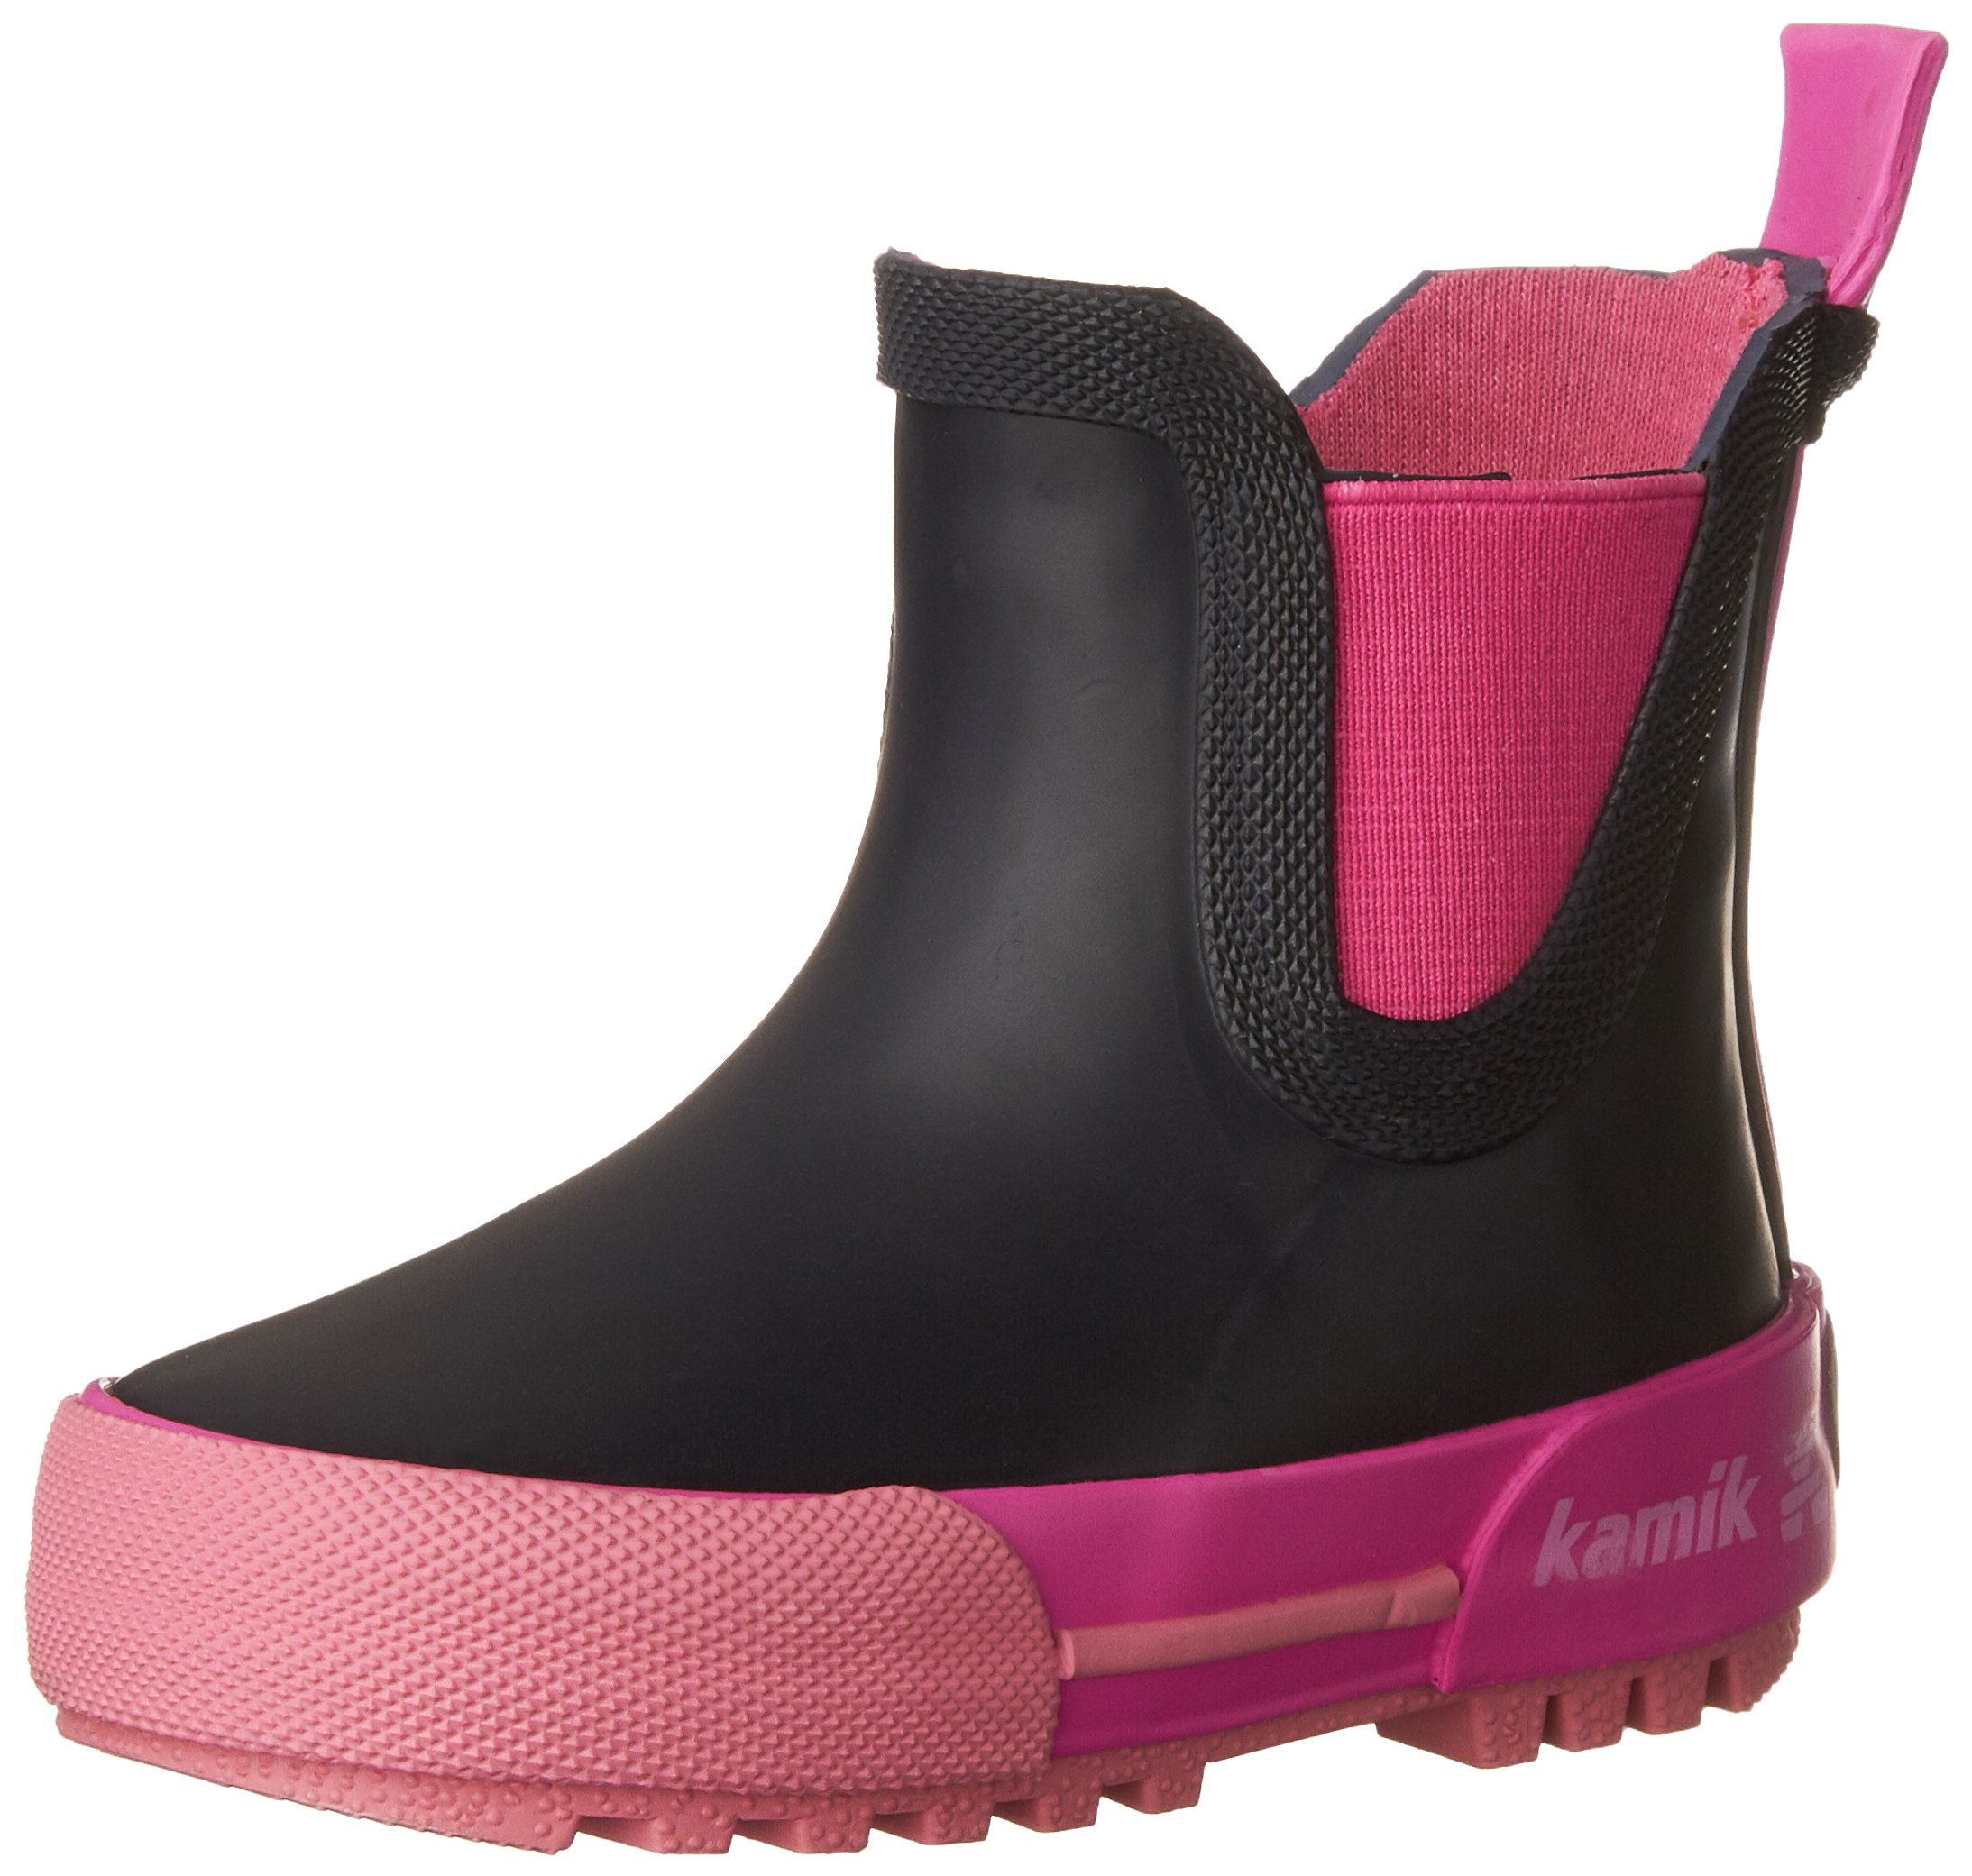 Kamik Girls' RAINPLAYLO/YOUTH/BLA Rain Boot, Navy/Magenta, 12 M US Little Kid